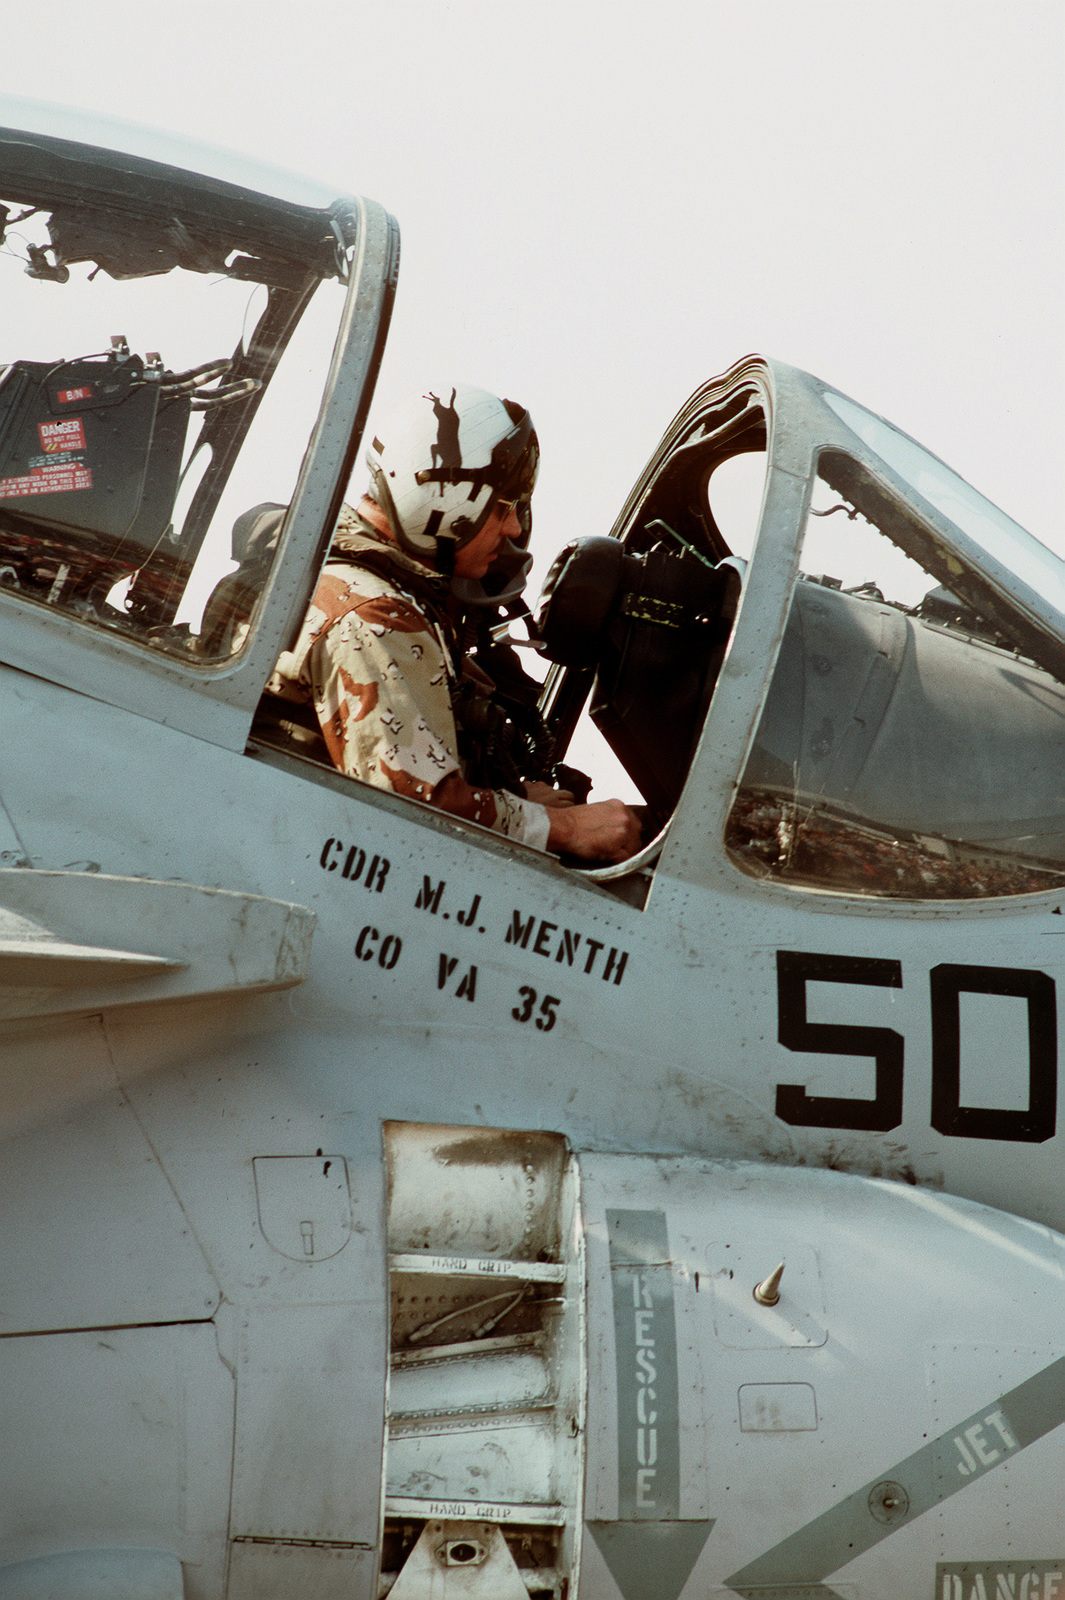 A bombardier/navigator sits in the cockpit of his Attack Squadron 35 (VA-35) A-6E Intruder aircraft following his return to the air station from the Persian Gulf along with other members of Carrier Air Wing 17 (CVW-17) and Carrier Air Wing 3 (CVW-3). The U.S. Navy personnel are being honored for their participation in Operation Desert Storm during homecoming ceremonies at the station